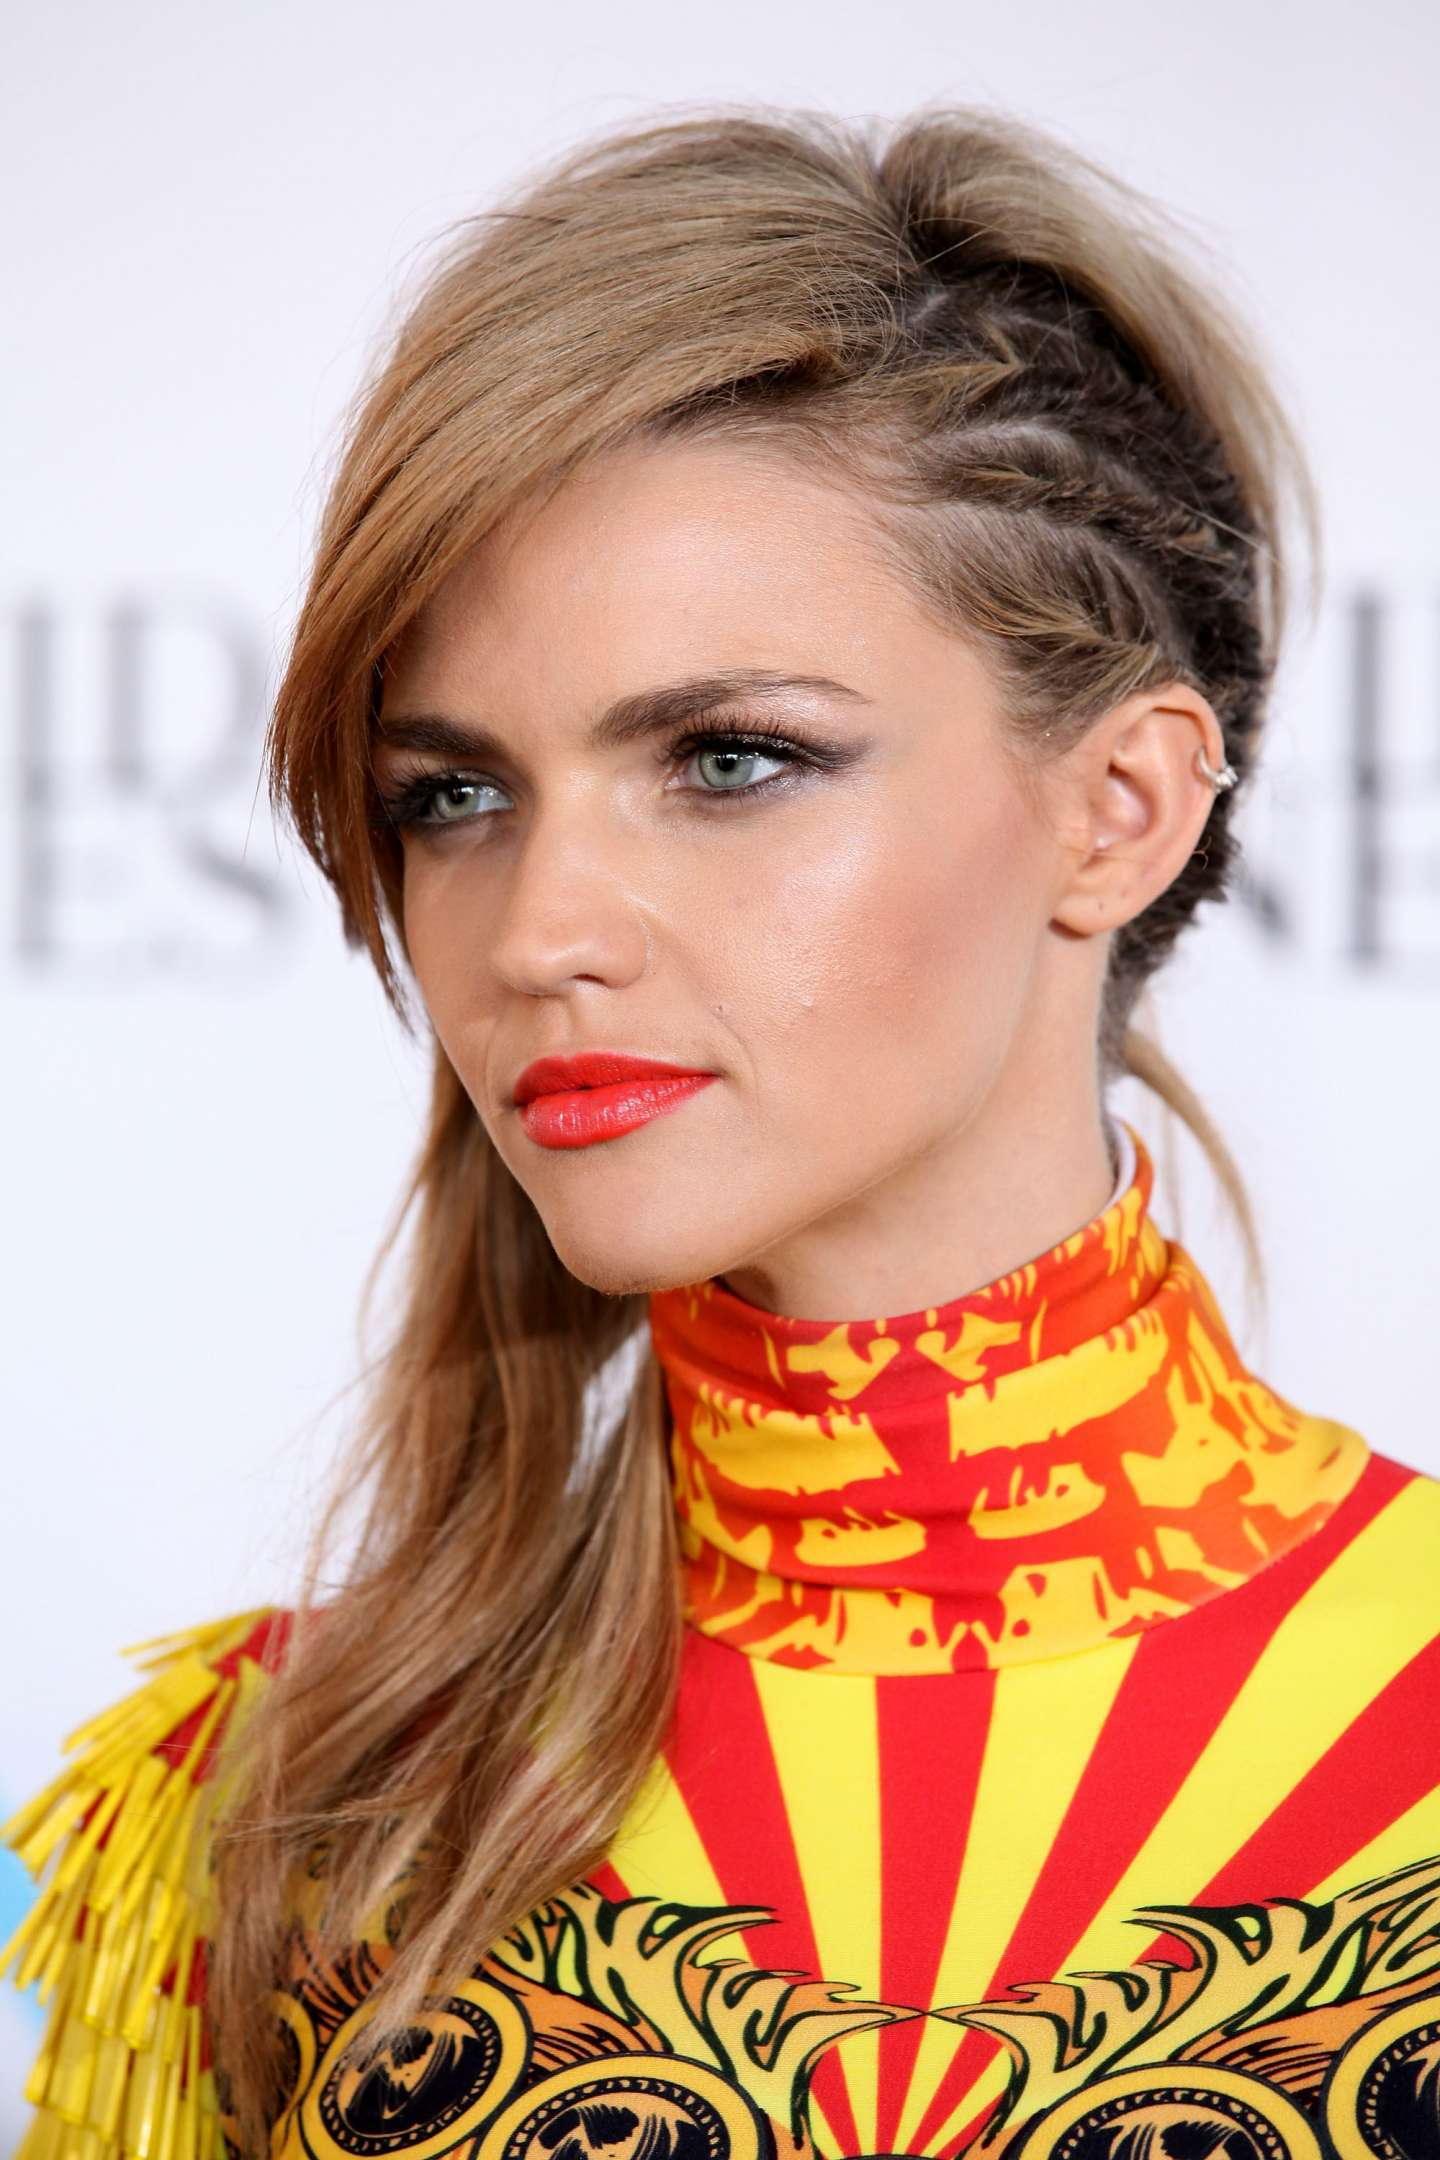 Il faux undercut di Ruby Rose